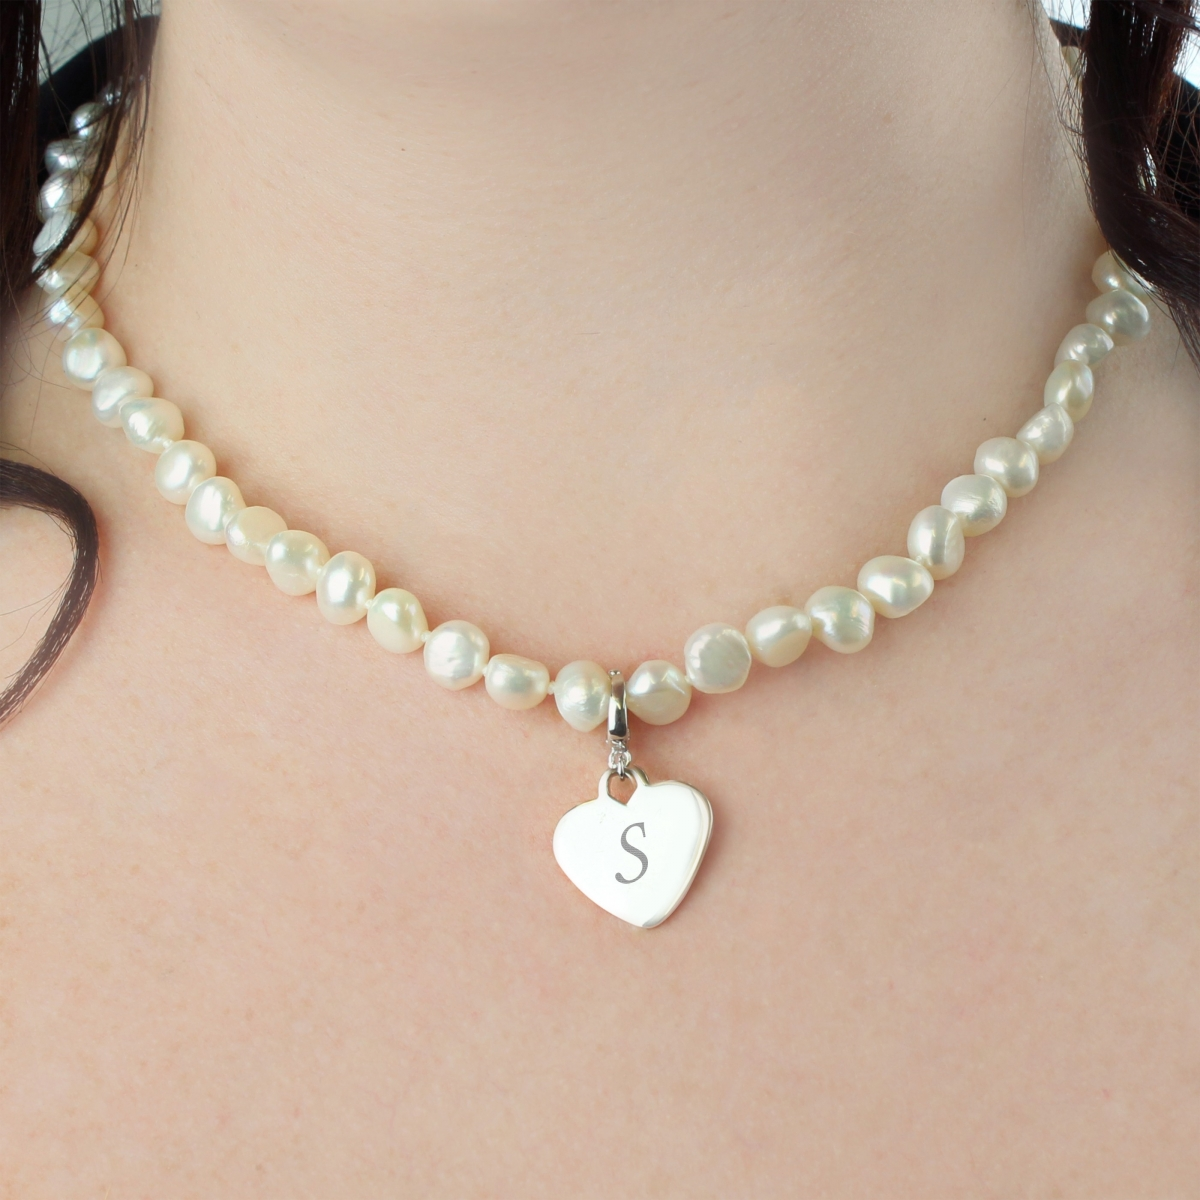 Personalised White Freshwater Scripted Initial Pearl Necklace